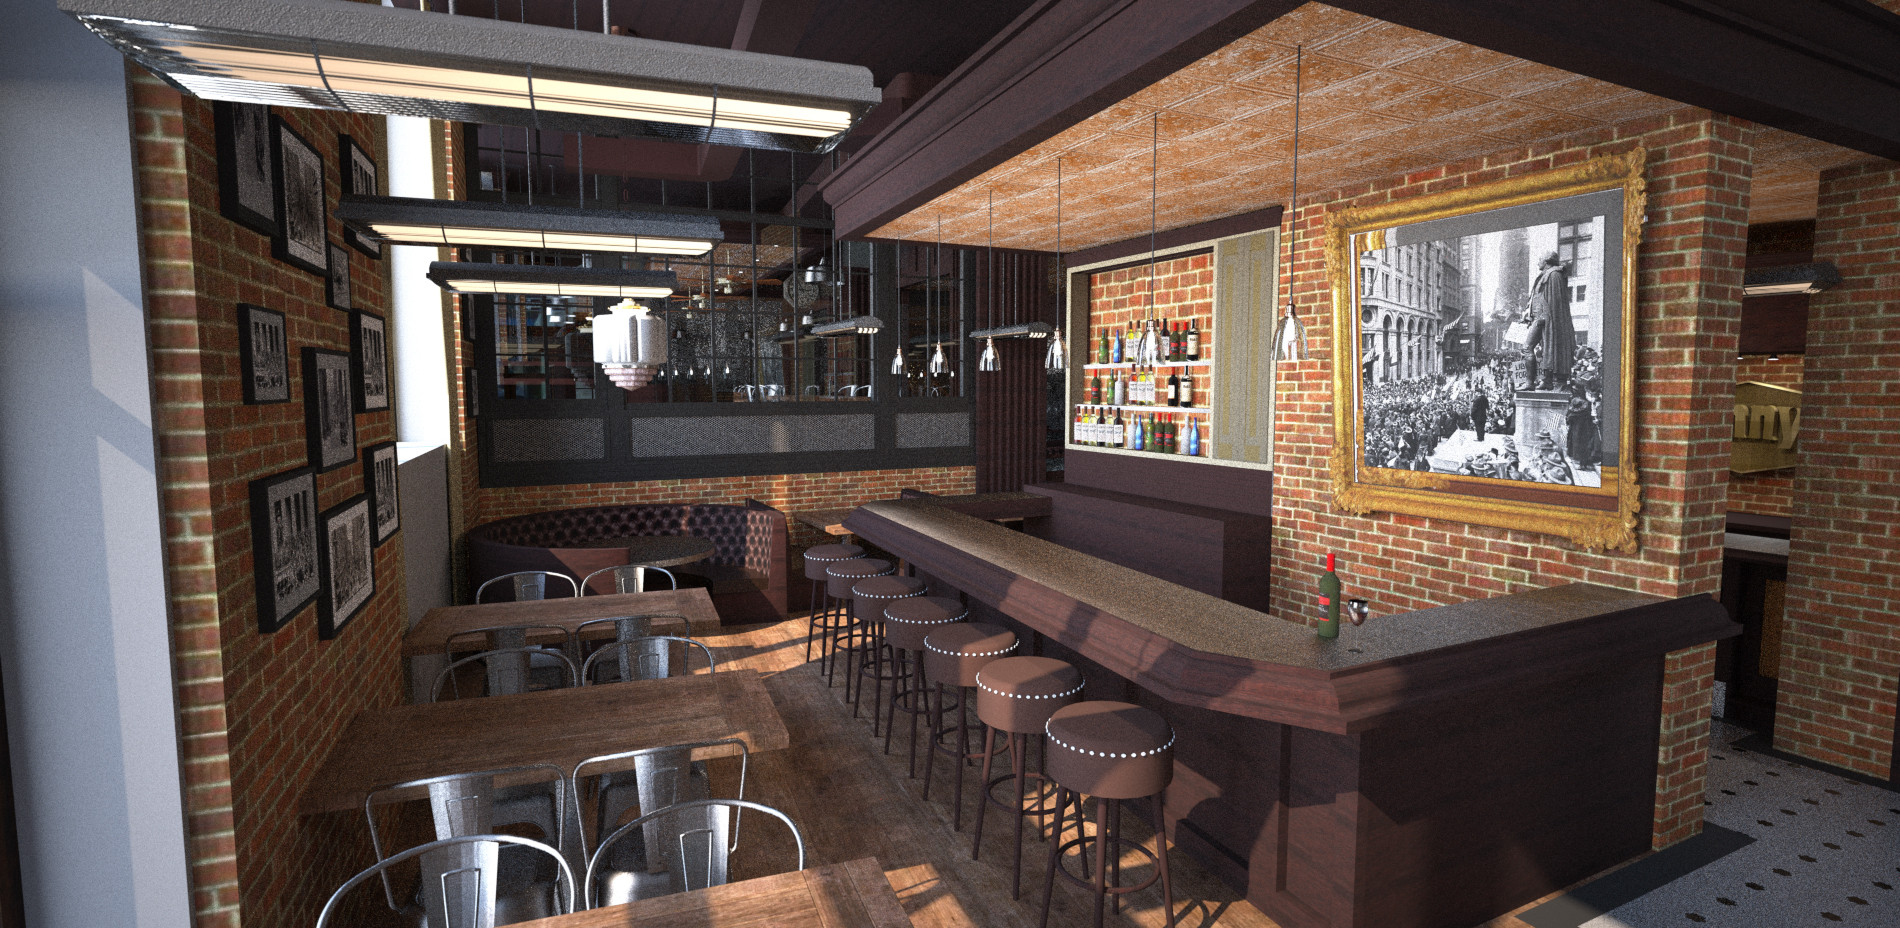 Next Bar_Rendering_4-29-2013.jpg